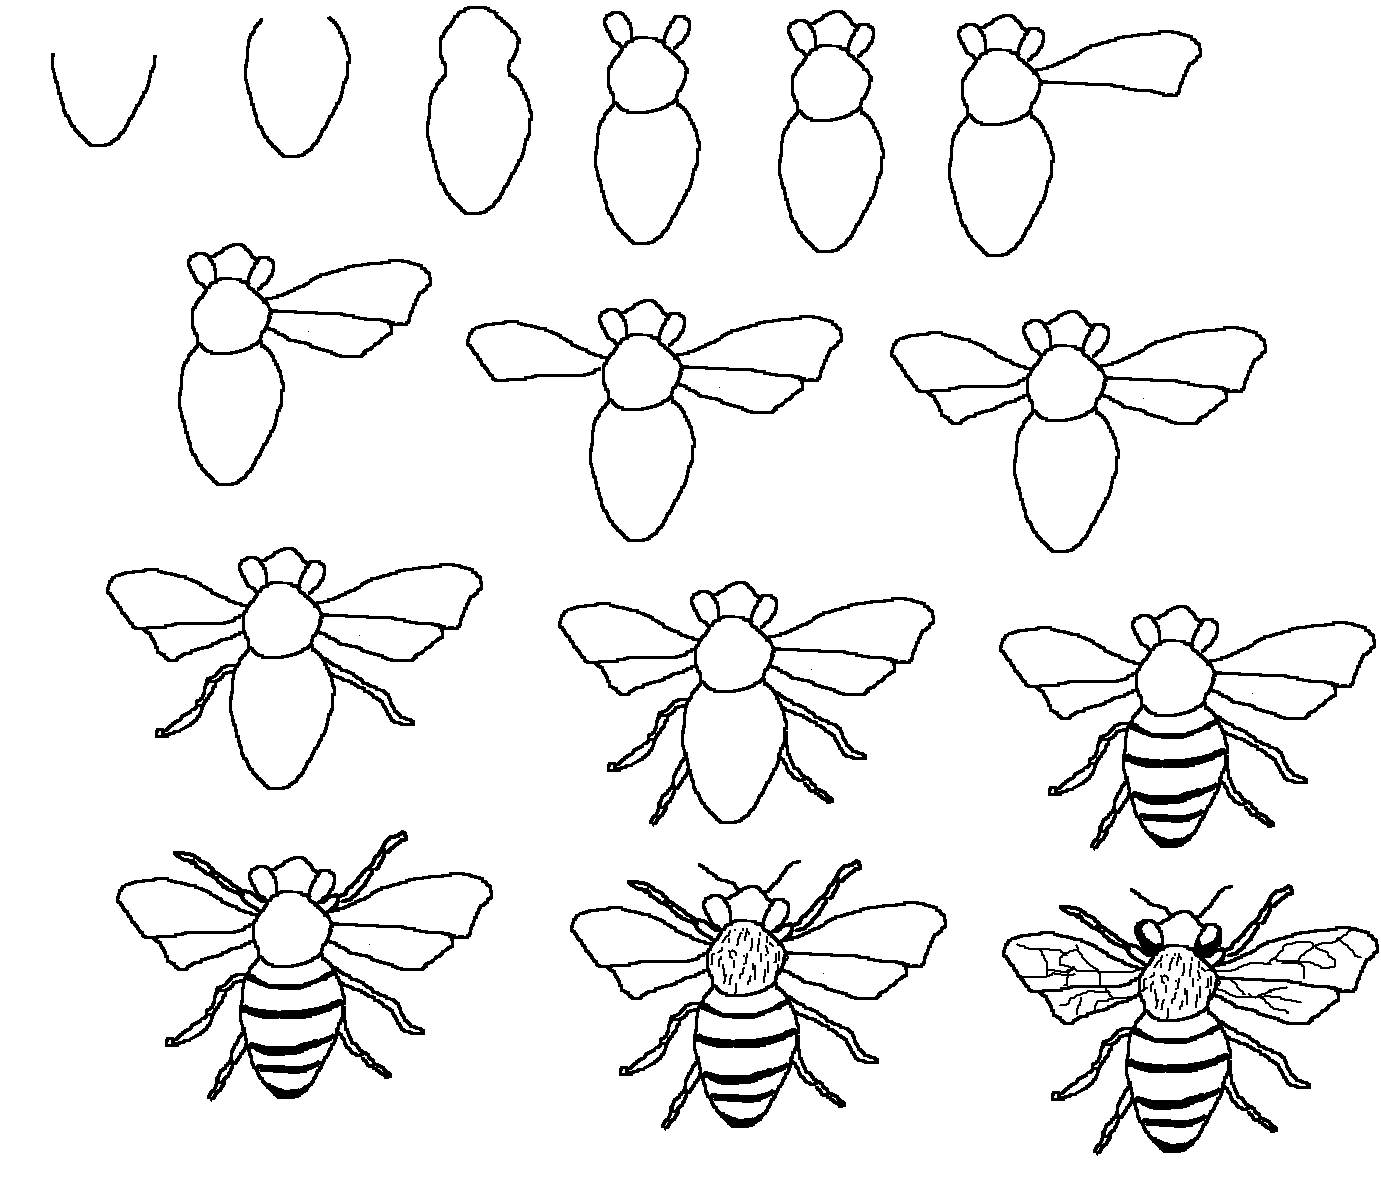 Line Art Step By Step : Tyler vo shows us how to draw a decent bee following lms